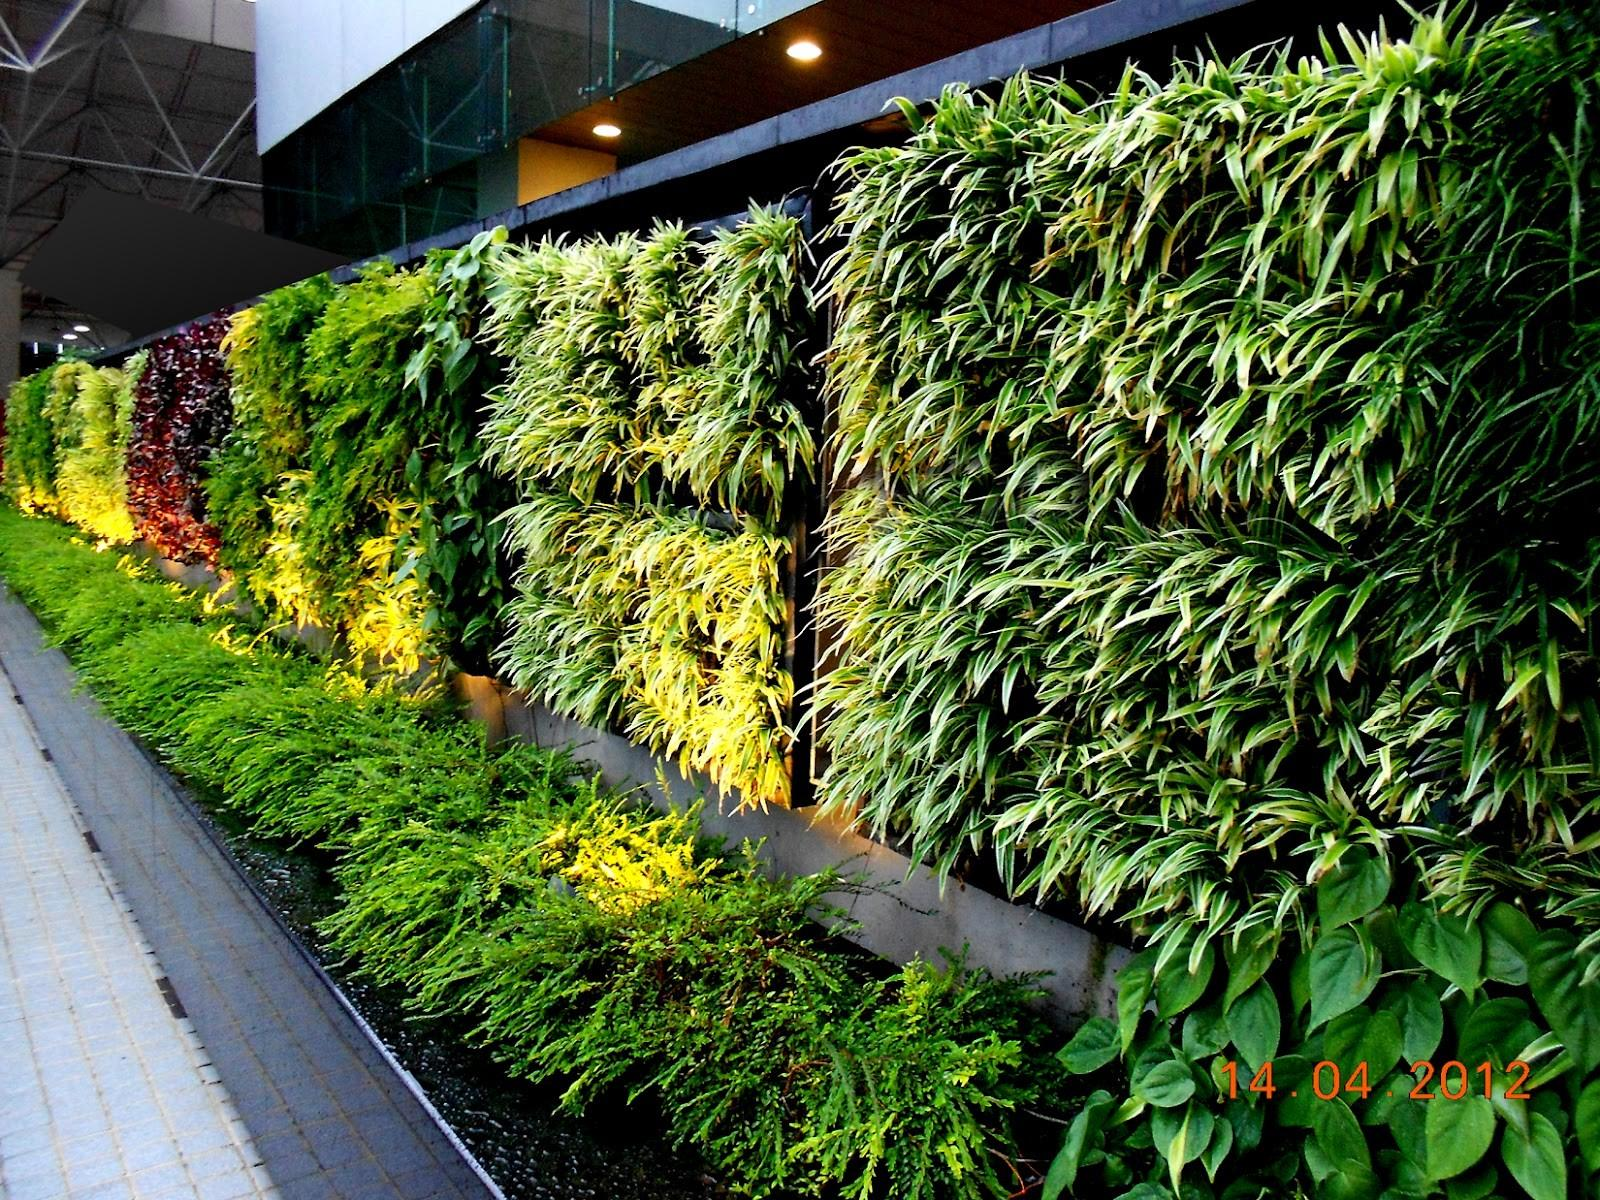 Agro Wall Vertical Garden Planting System